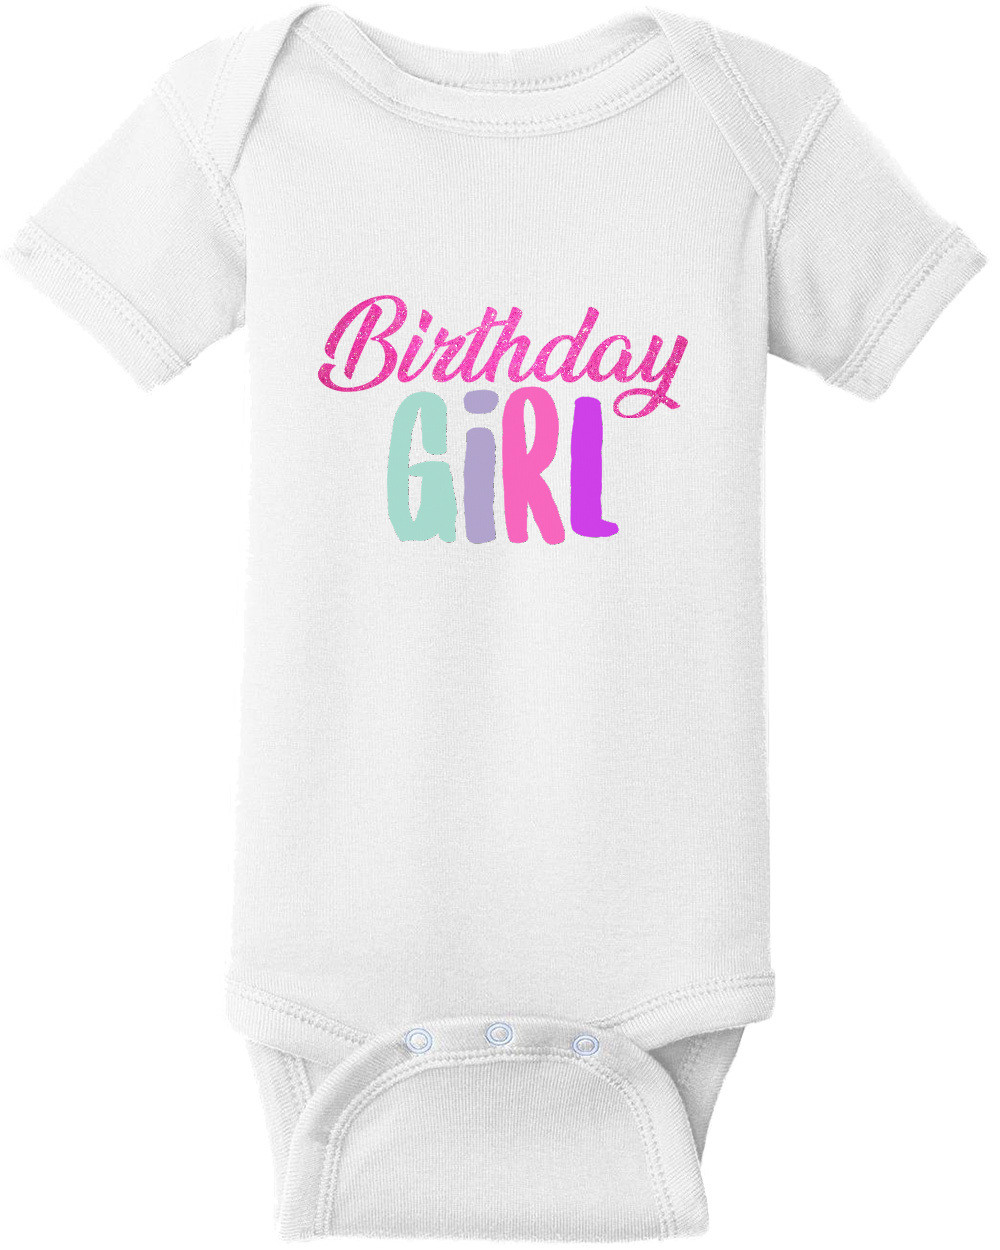 Birthday Girl Shirt. Girl's Happy Birthday. Custom T-Shirt with your girl's name and age on the back. Personalized Birthday T-Shirt